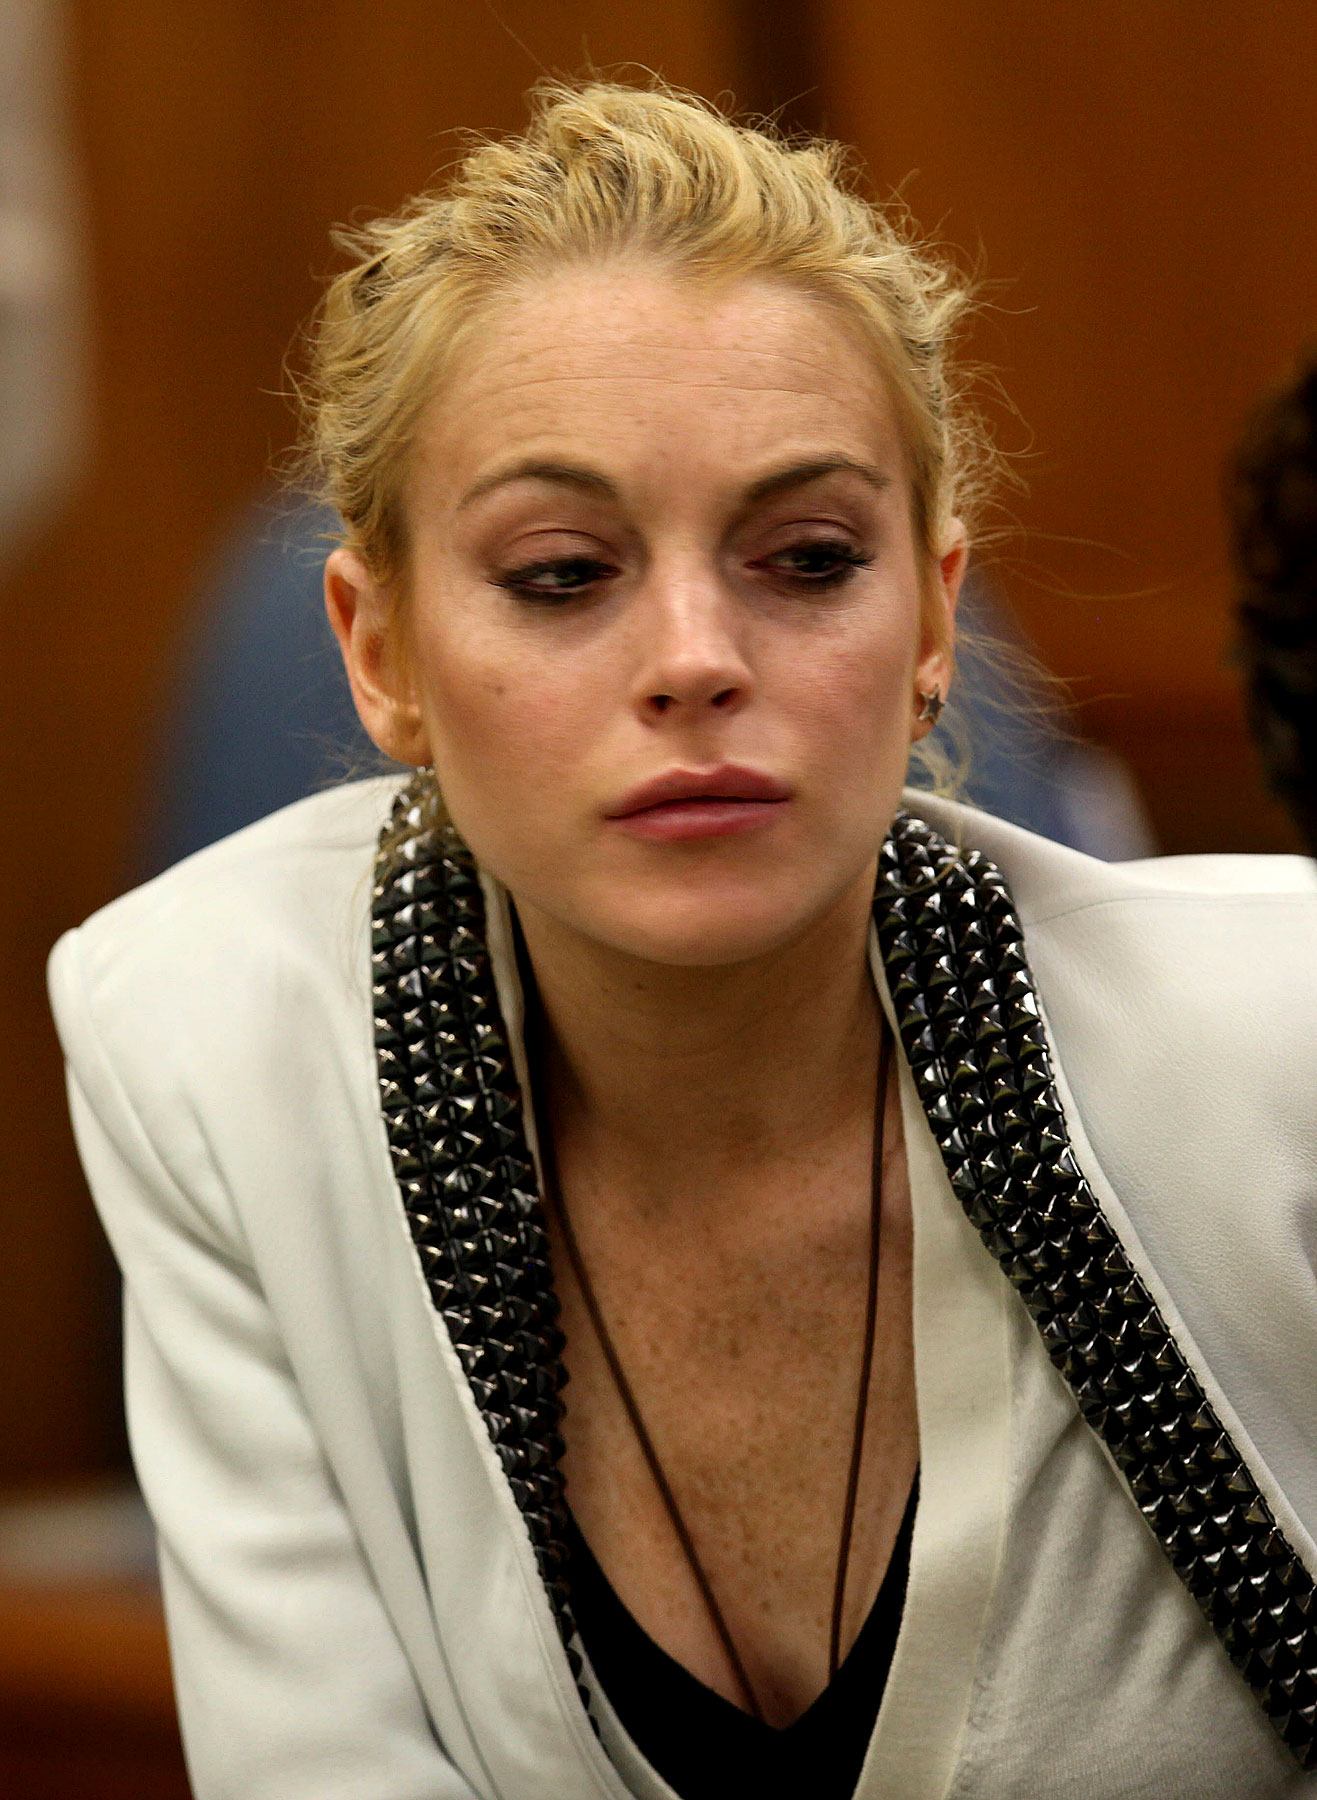 PHOTO GALLERY: Lindsay Lohan's Court Date